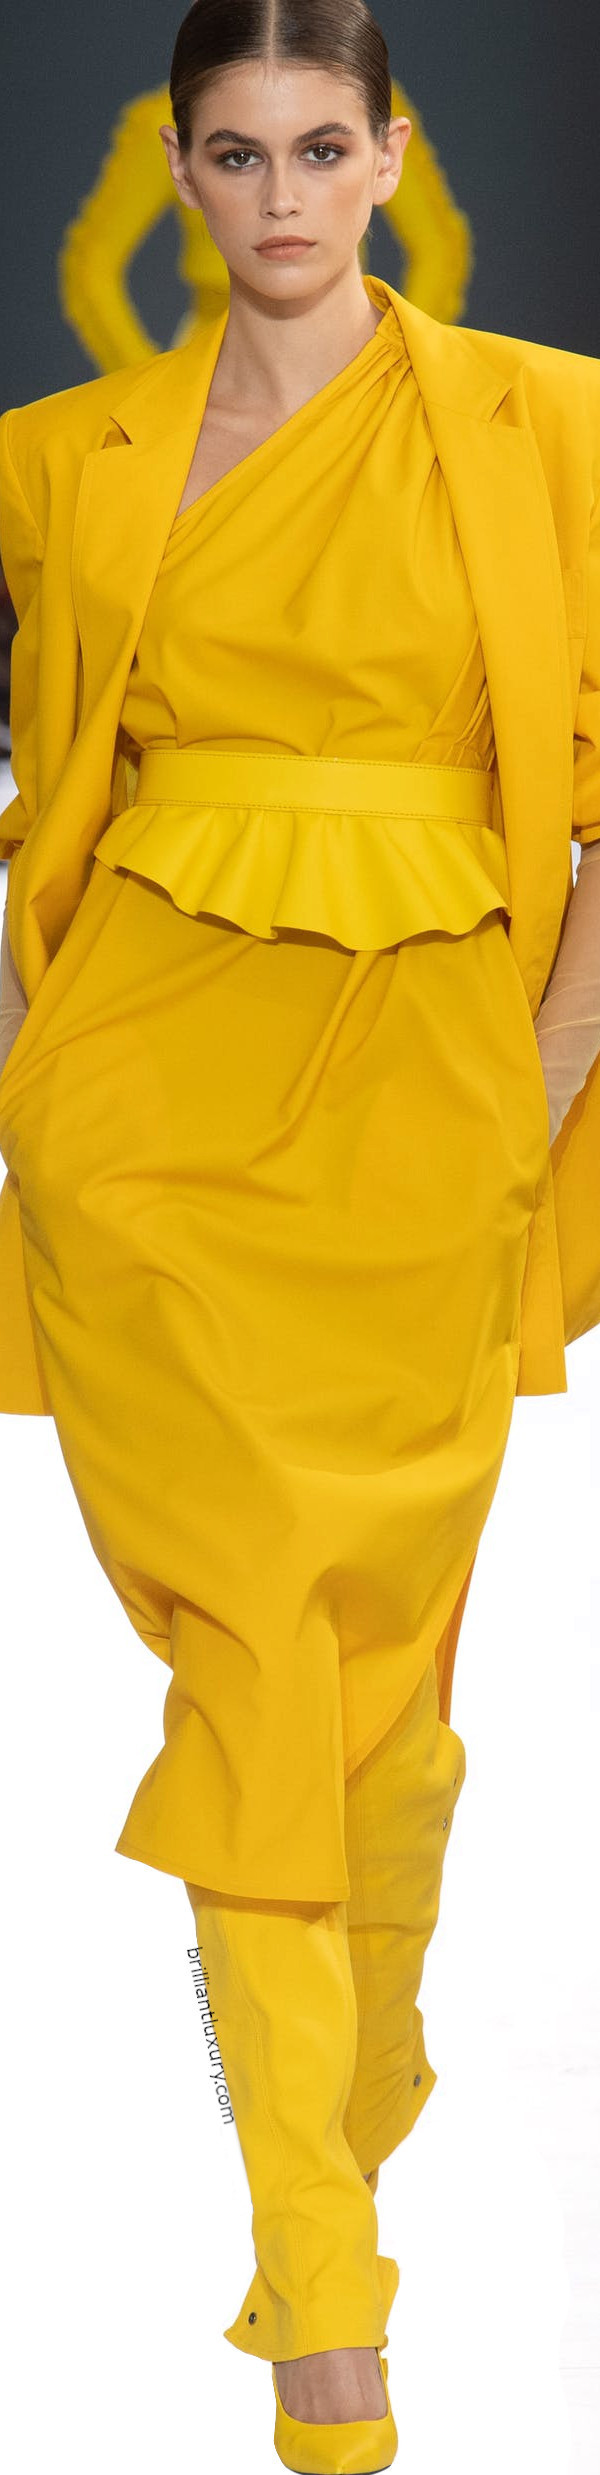 Max Mara Fashion in yellow